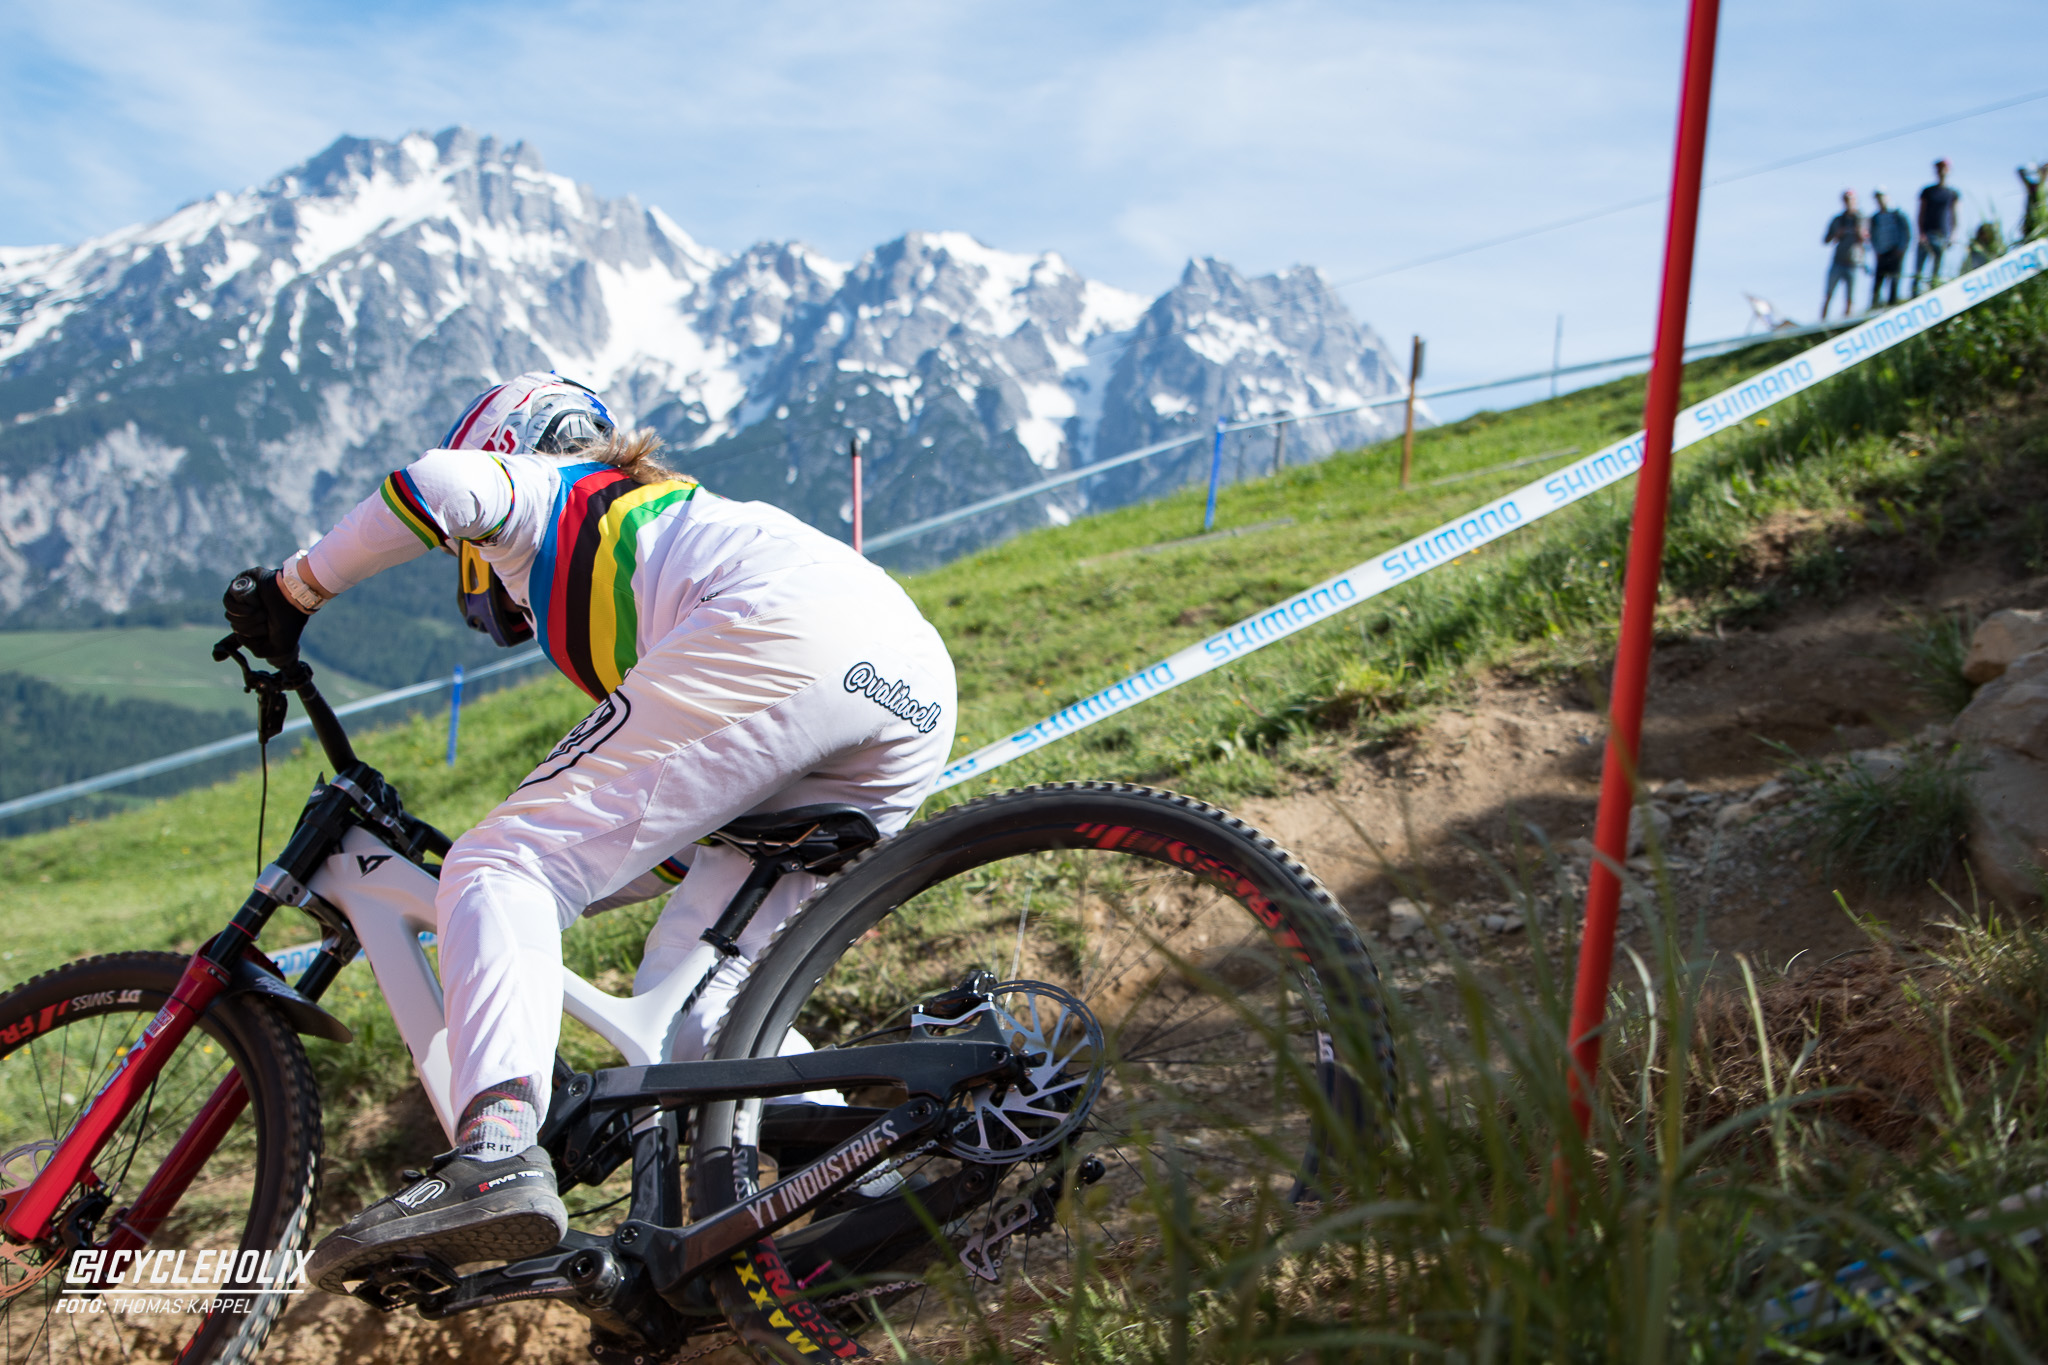 2019 Downhill Worldcup Leogang Finale Action 2 Cycleholix